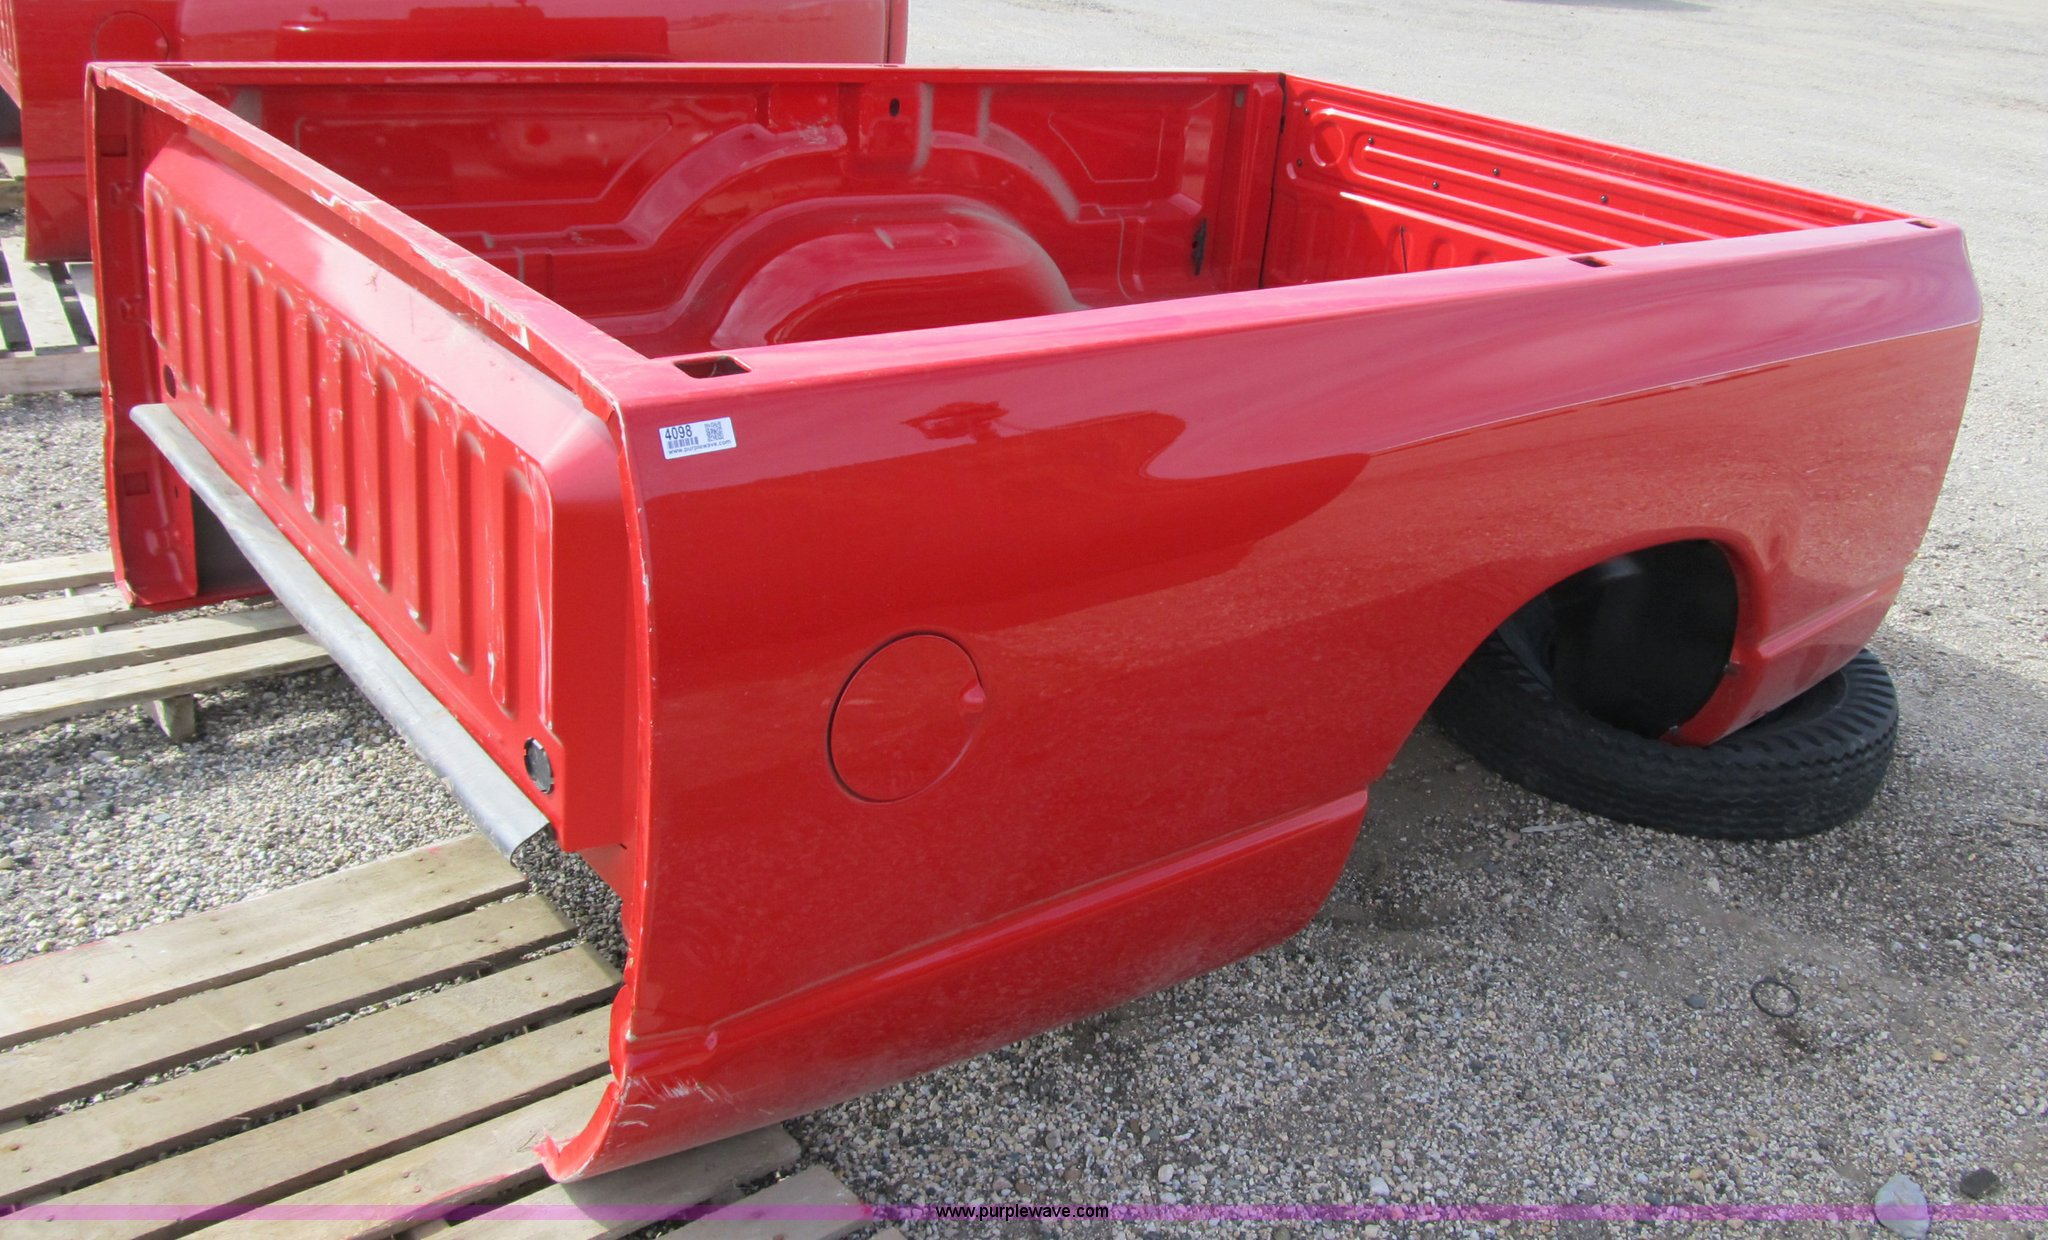 Dodge Ram Truck Bed For Sale >> 2006 Dodge Ram 3 4 Ton Pickup Truck Bed Item 4098 Sold